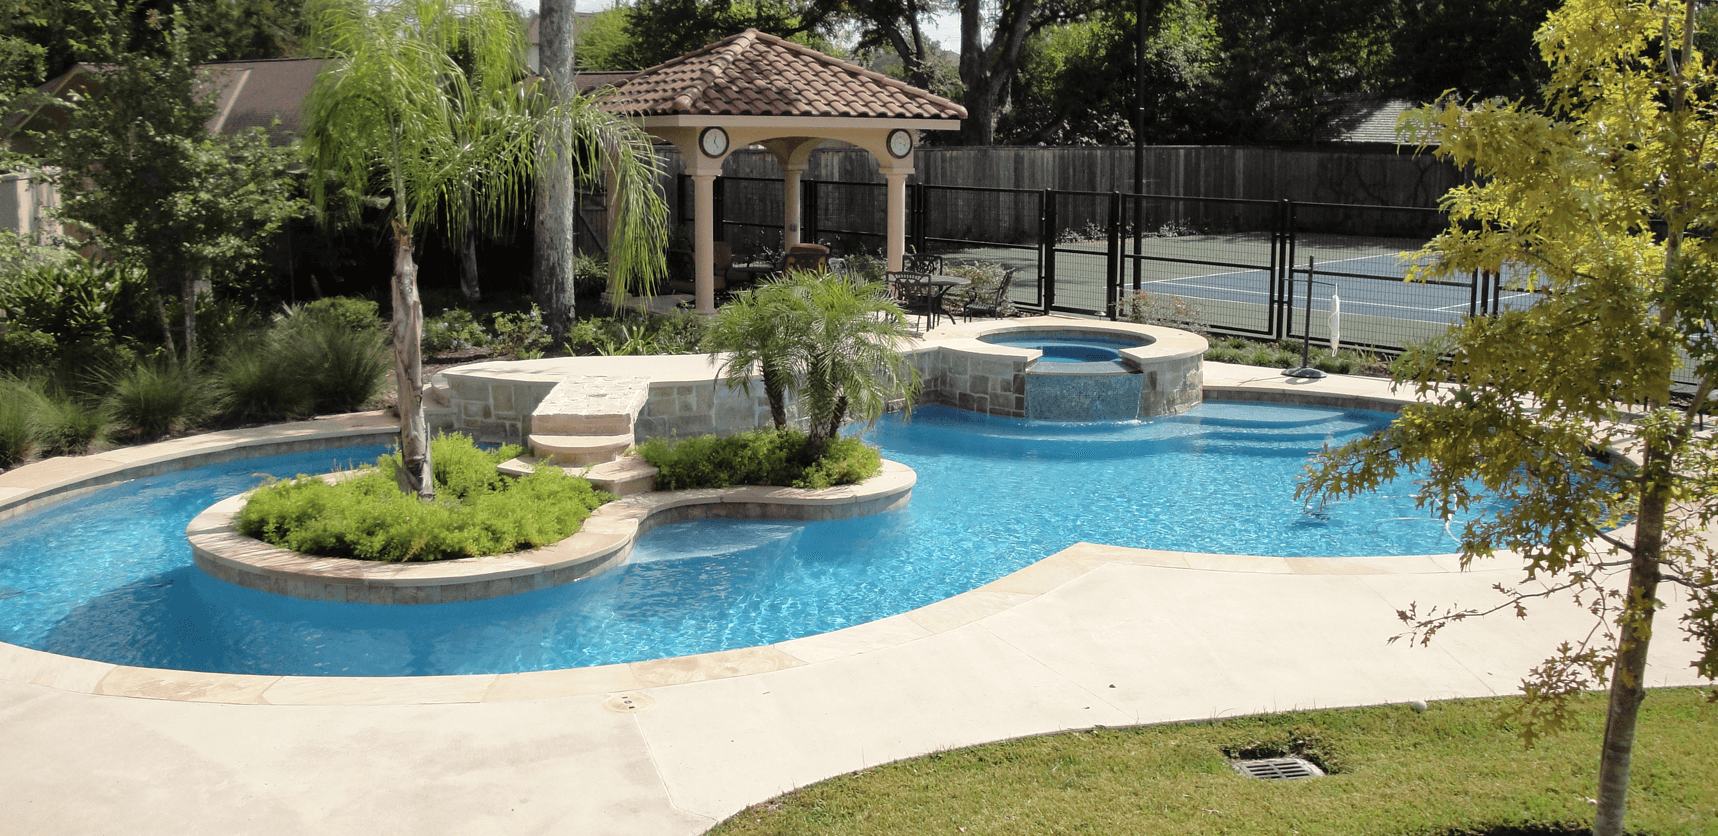 Pool construction houston pool design katy pool service for Pool design services